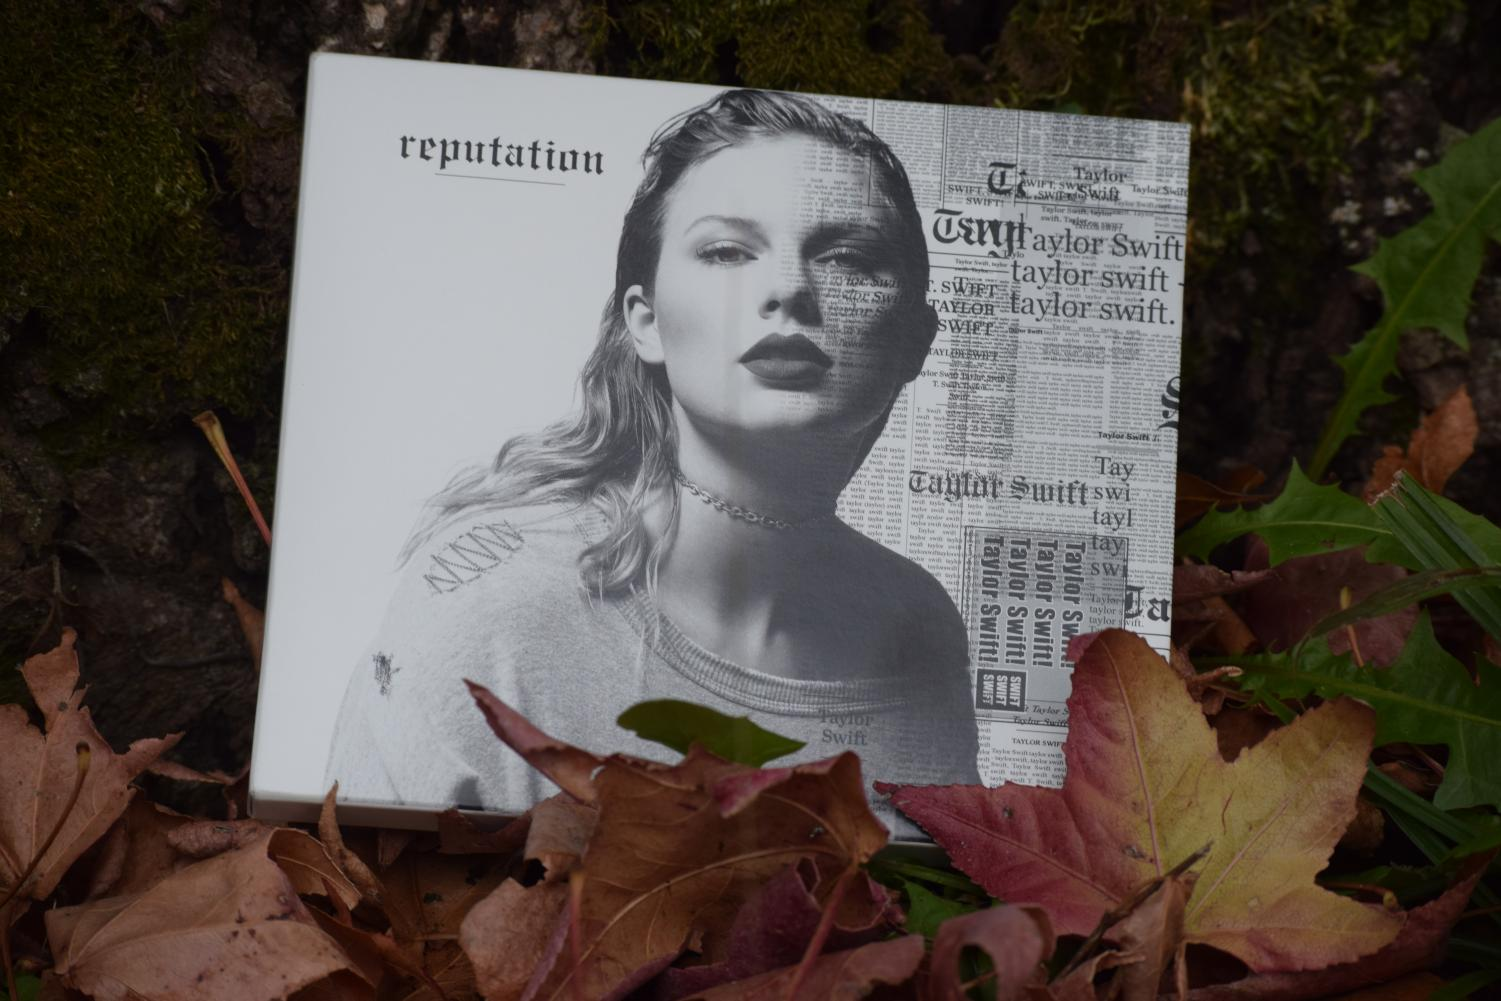 The cover of the album